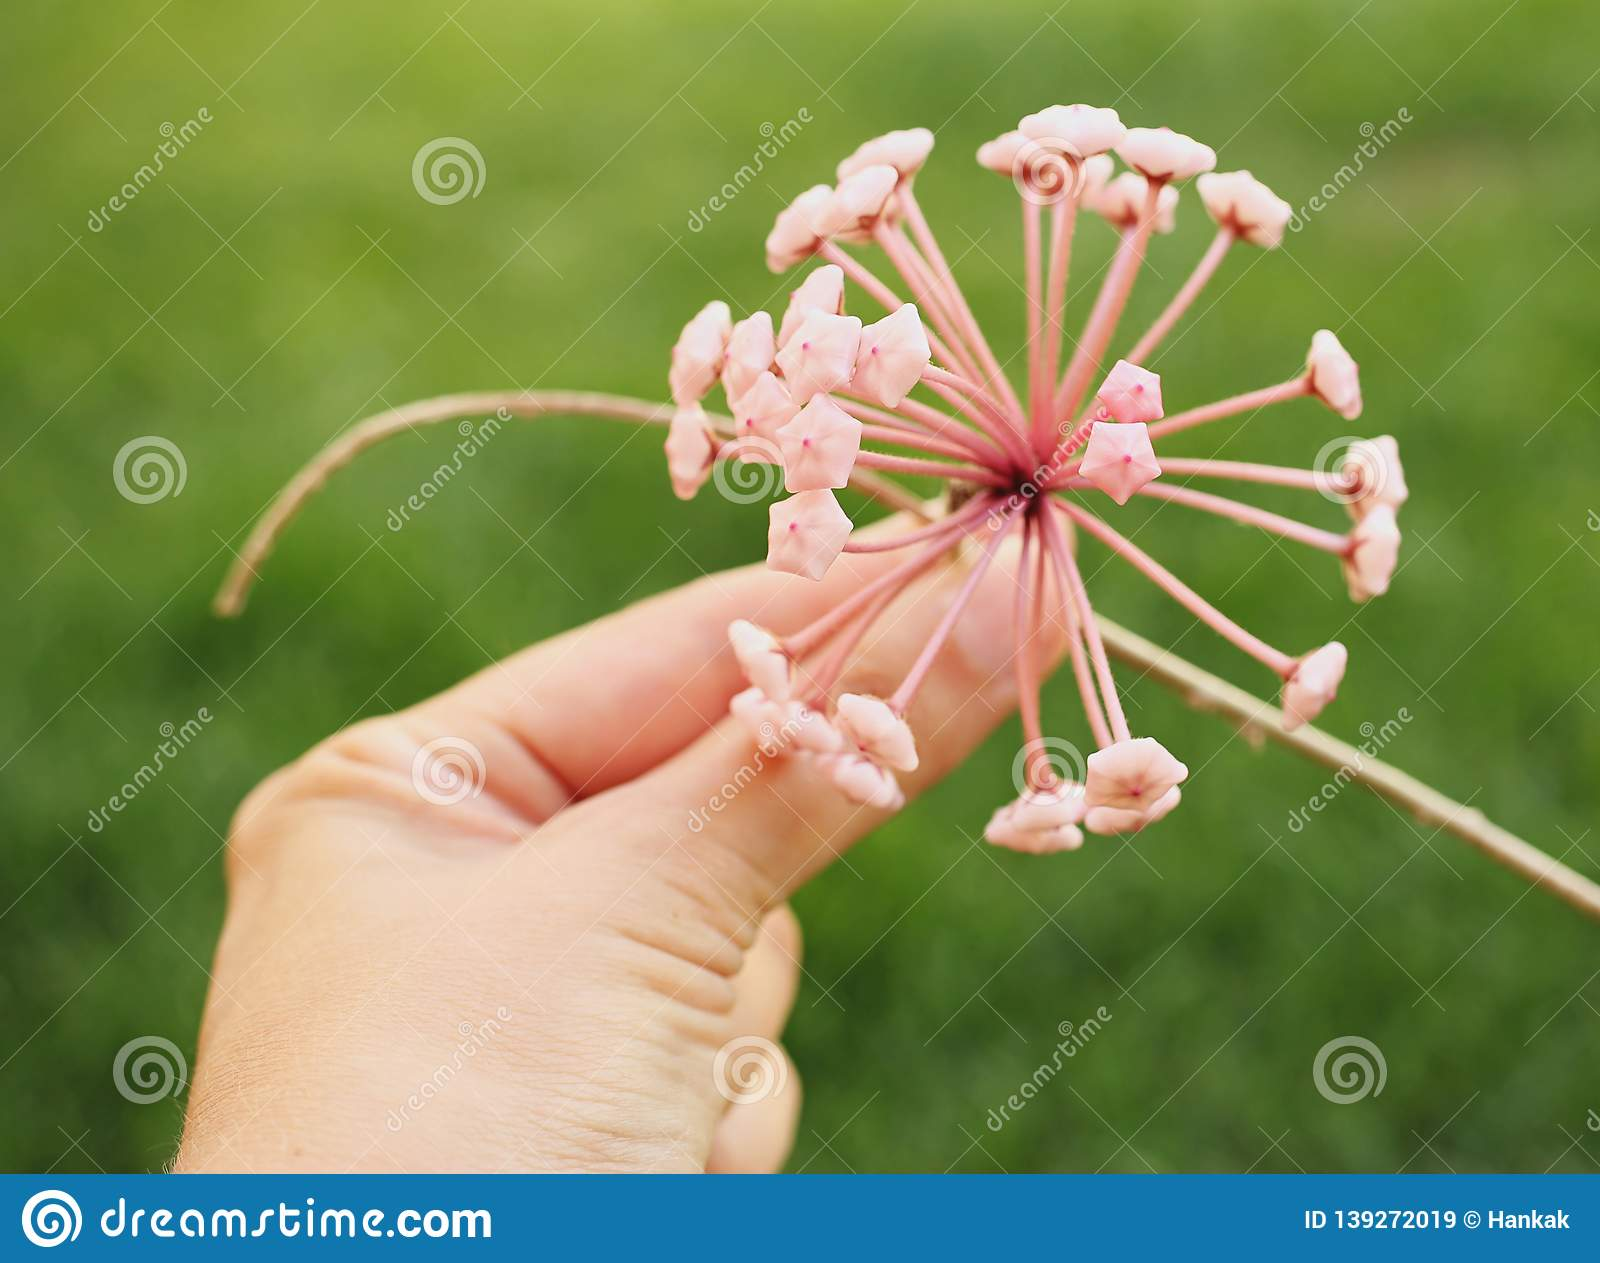 Blossom of wax plant hold in hand isolated on green bokeh background. Woman. Porcelainflower. Hoya carnosa